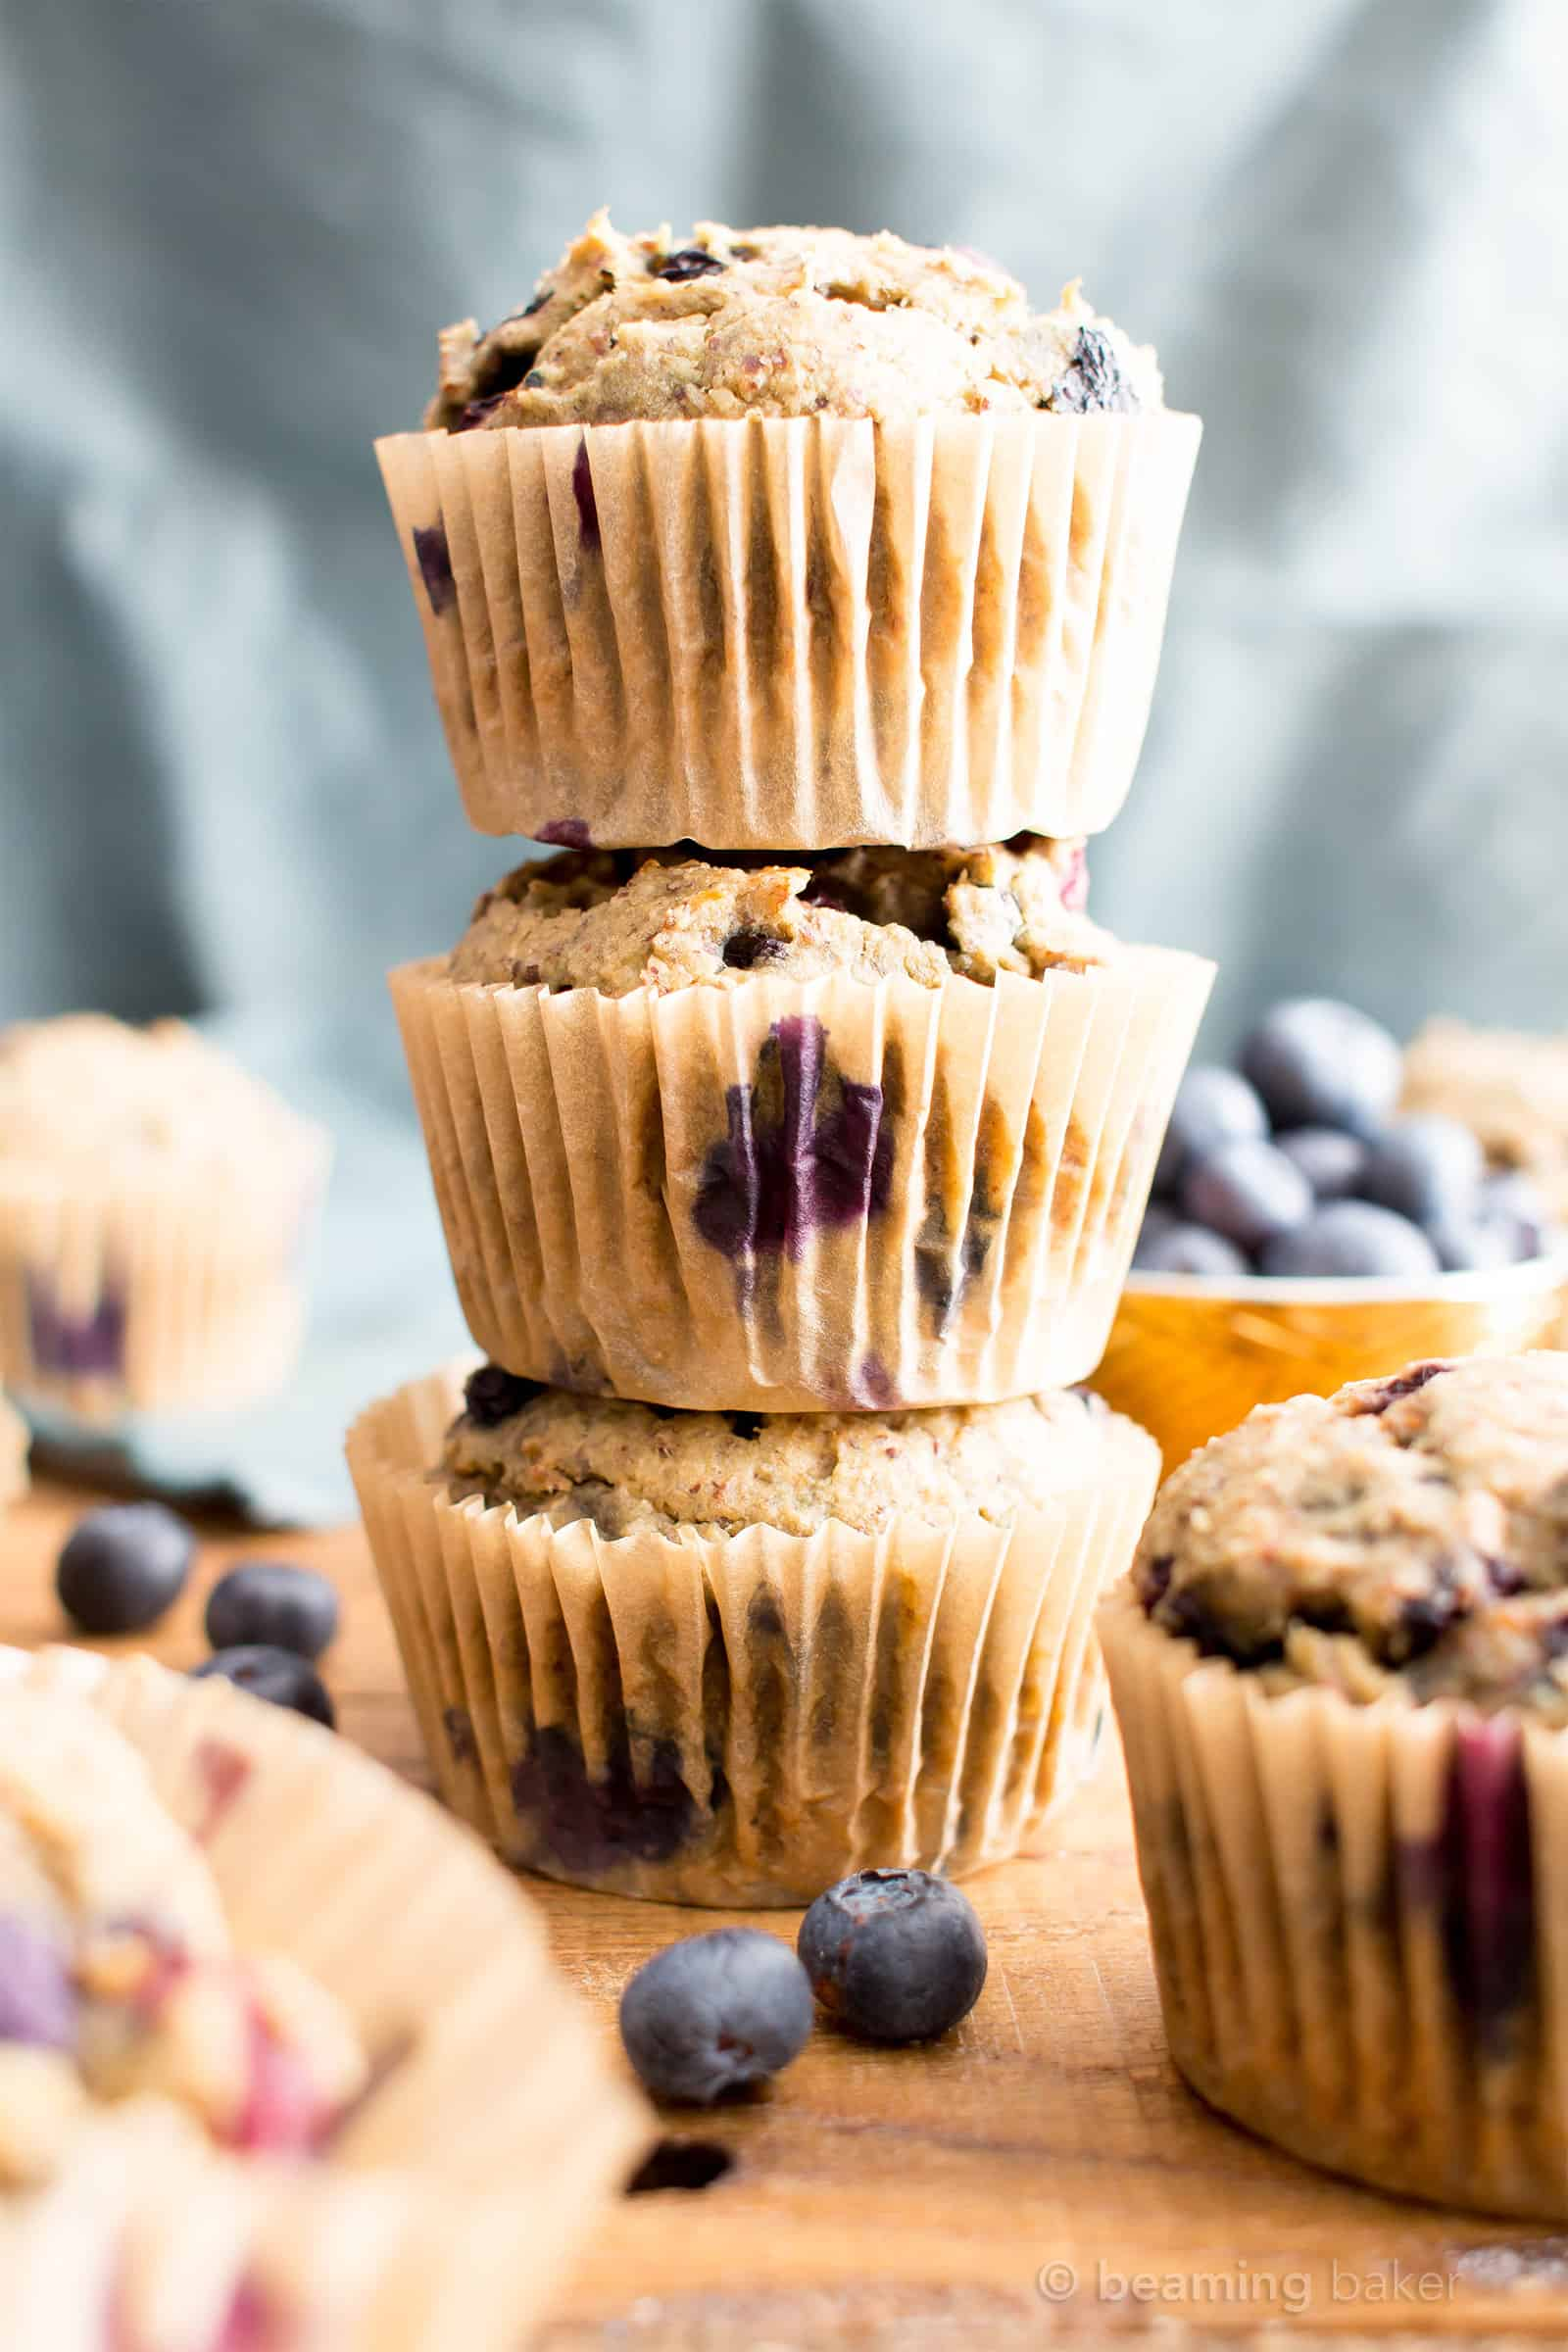 Healthy Banana Blueberry Muffins Recipe (V, GF): an easy recipe for moist banana muffins bursting with fresh blueberry flavor! #Vegan #GlutenFree #DairyFree #Breakfast #Healthy | Recipe on BeamingBaker.com